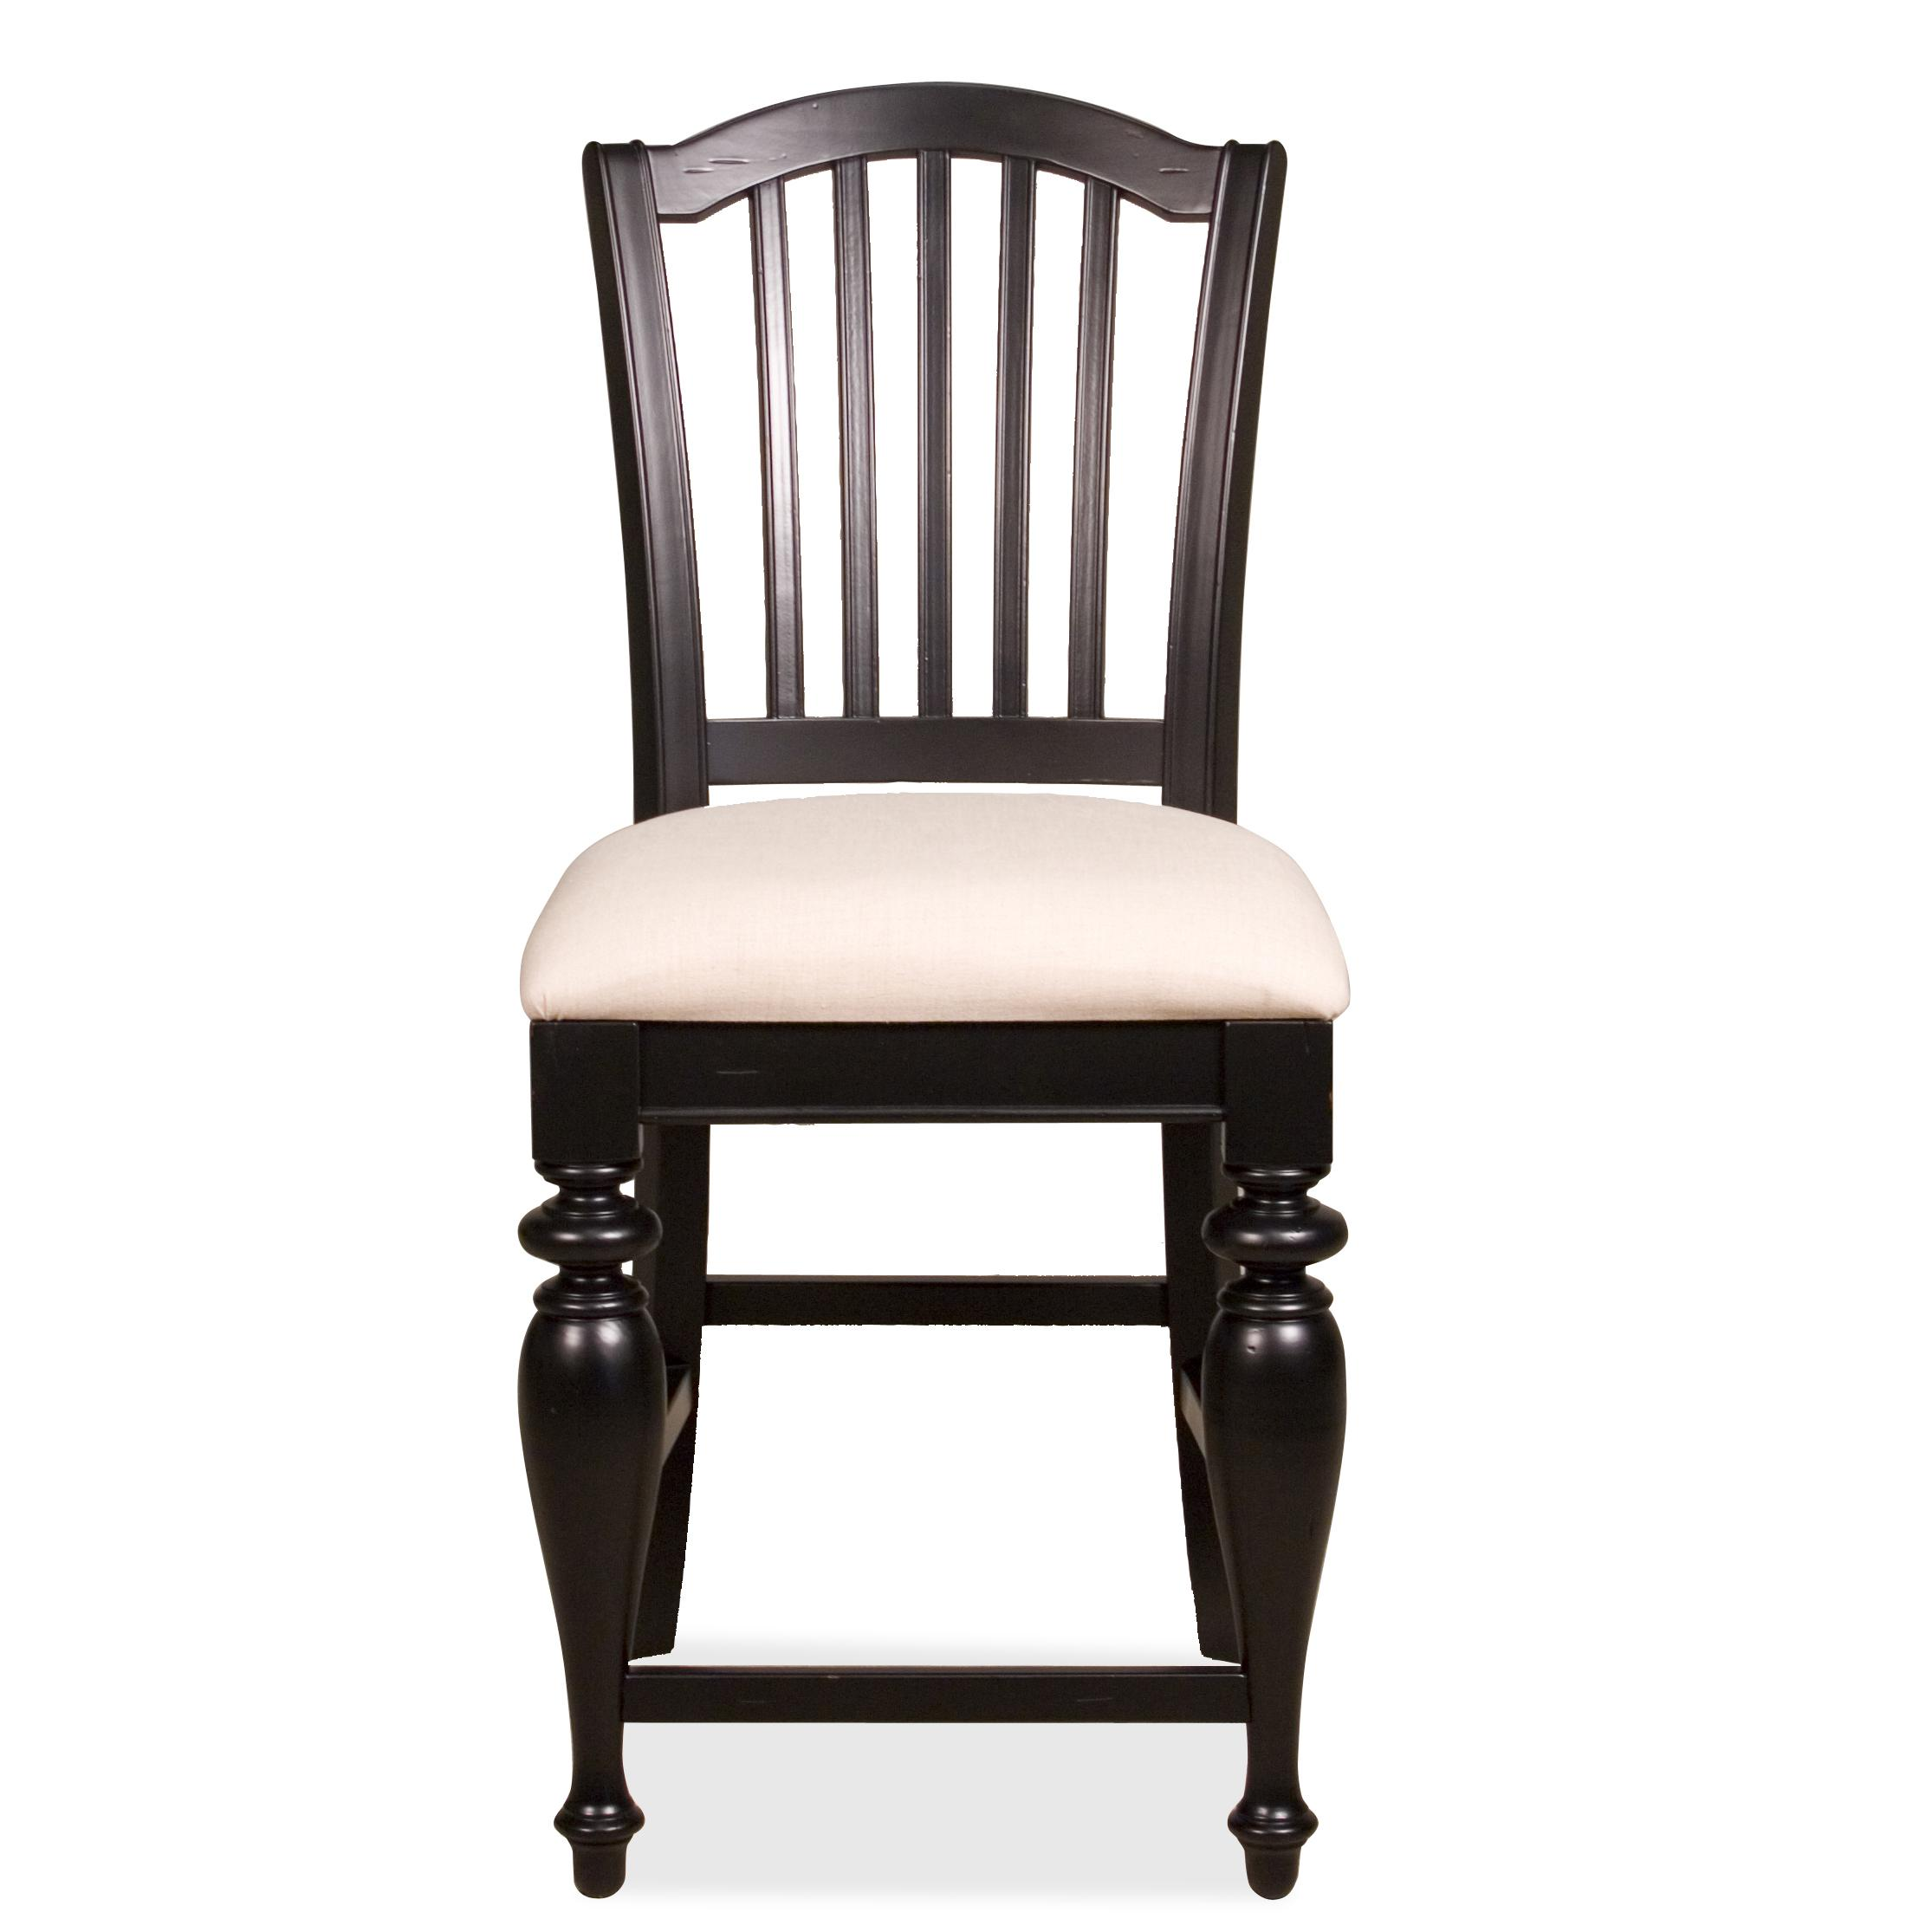 Riverside Furniture Mix-N-Match Chairs Counter Height Stool    - Item Number: 36559